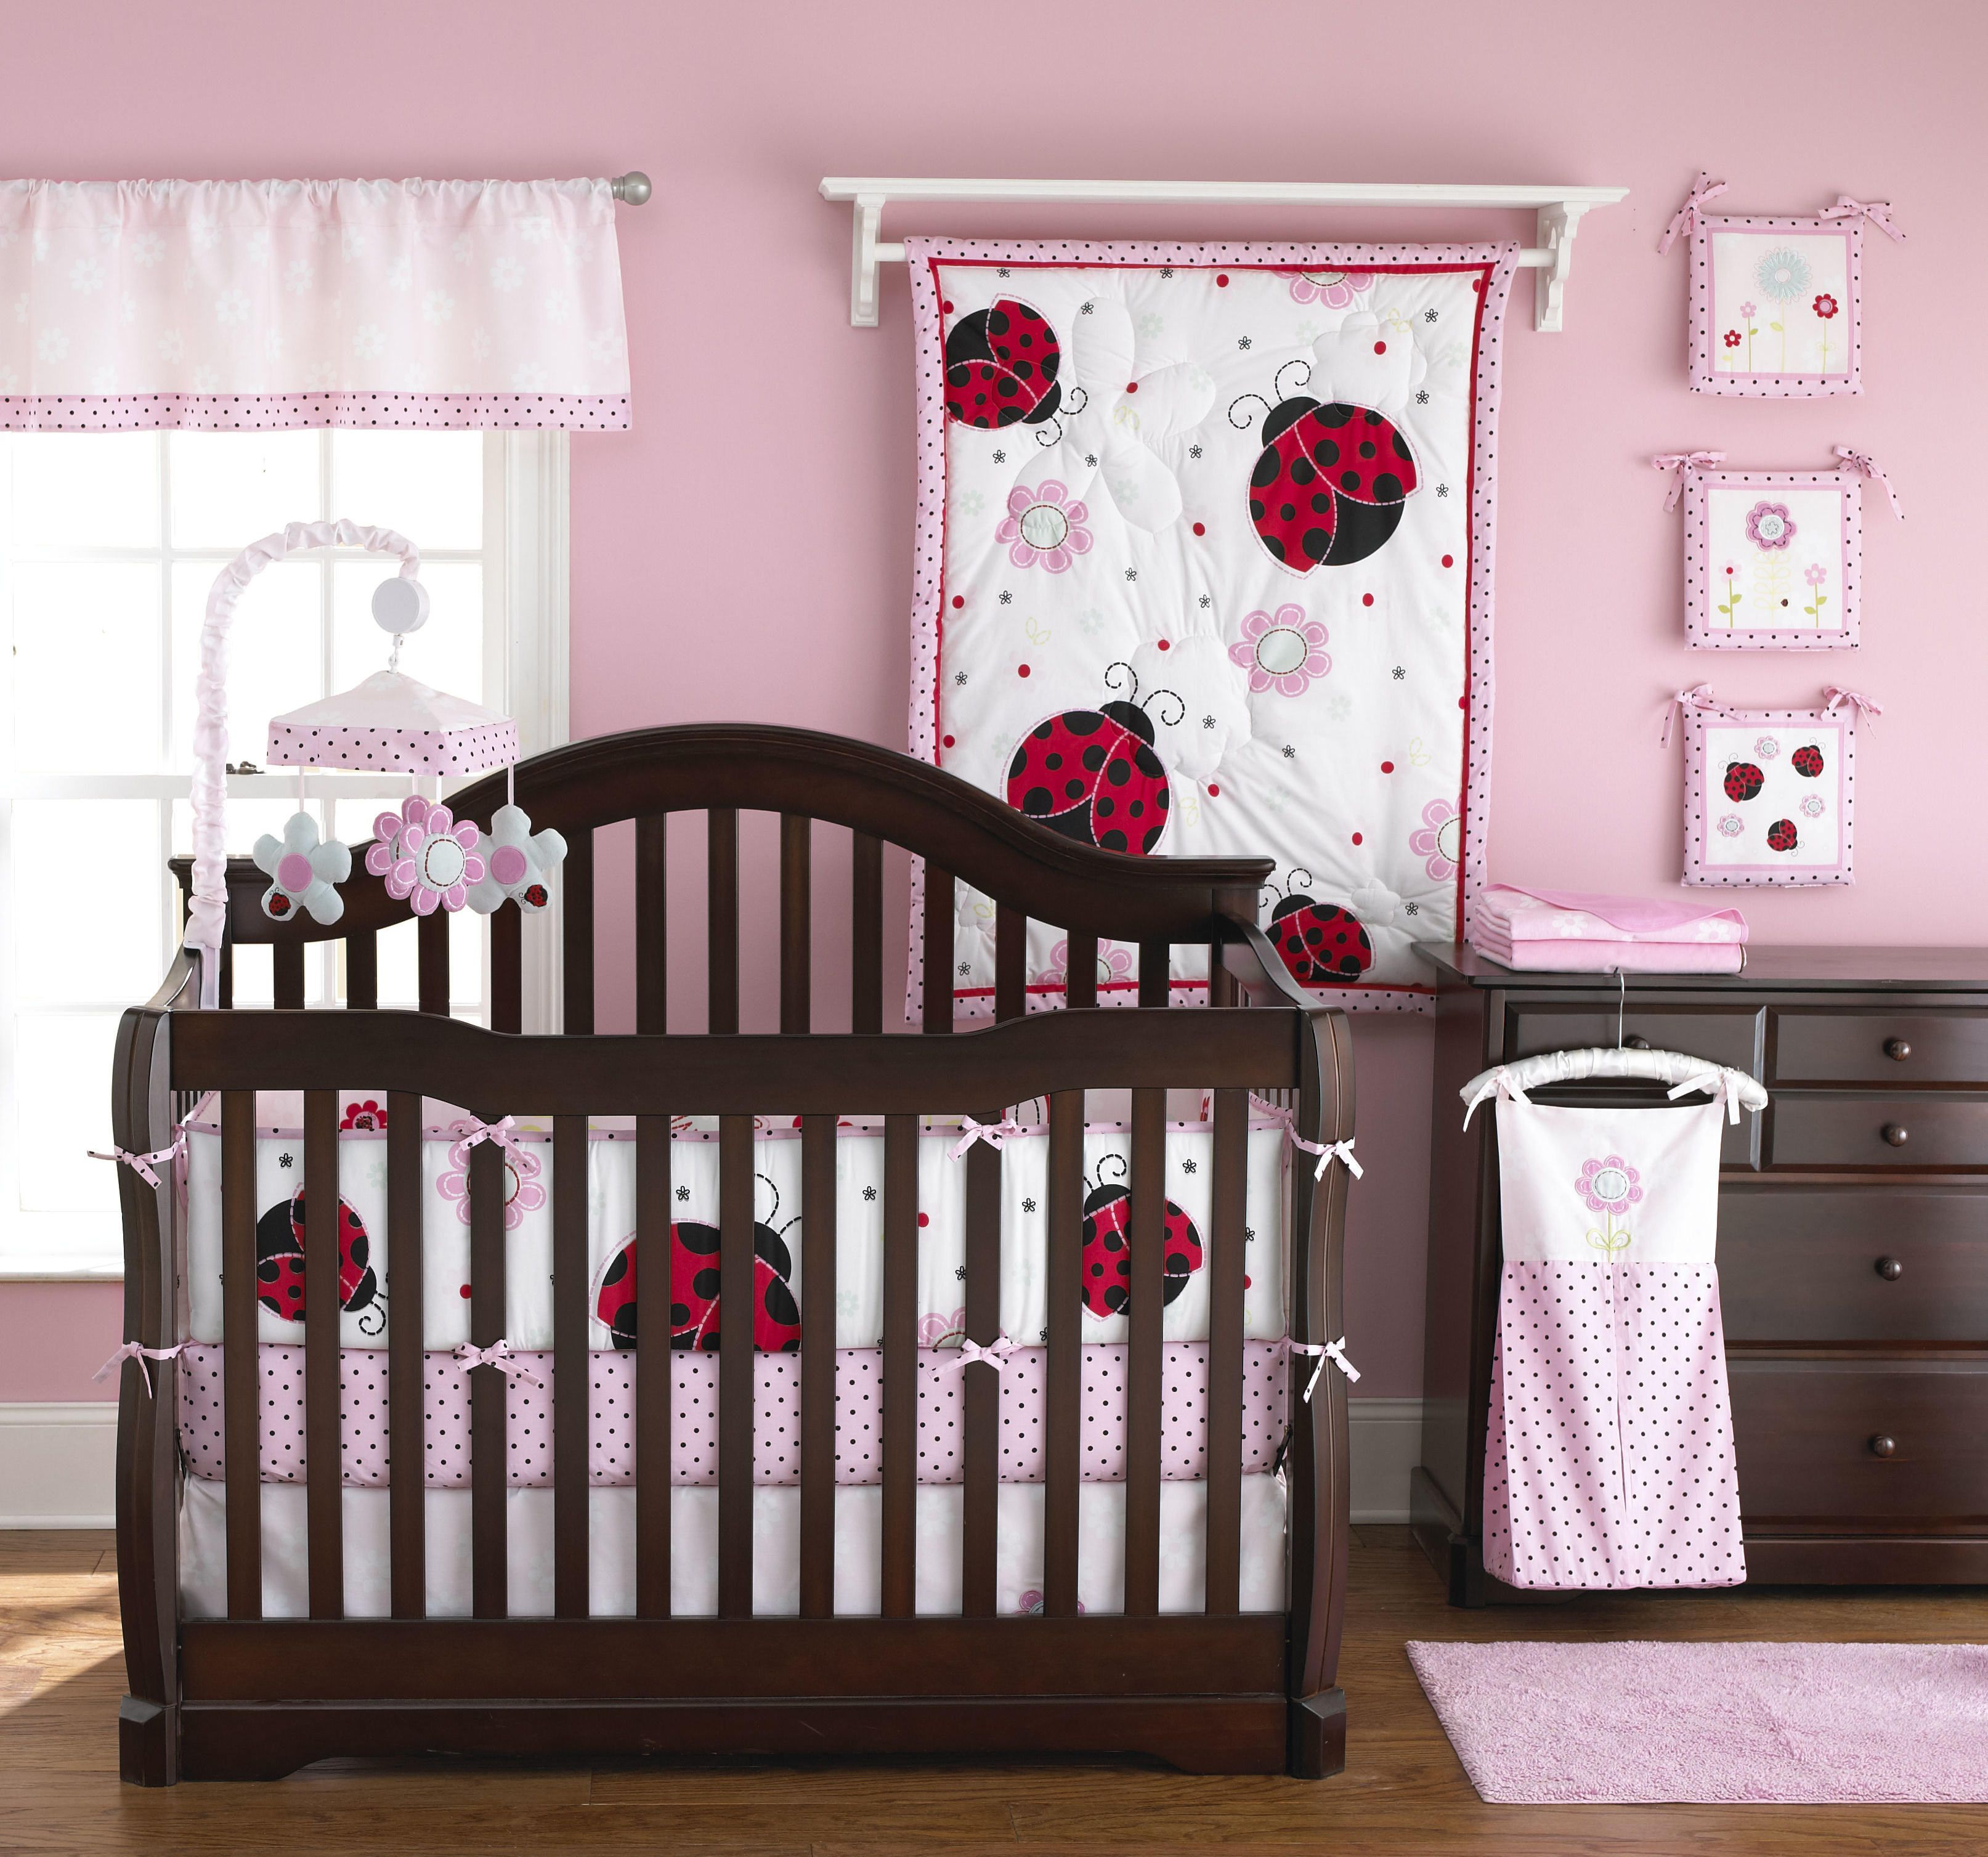 lady bug nursery pretty pink ladybug crib bedding- pretty in pink